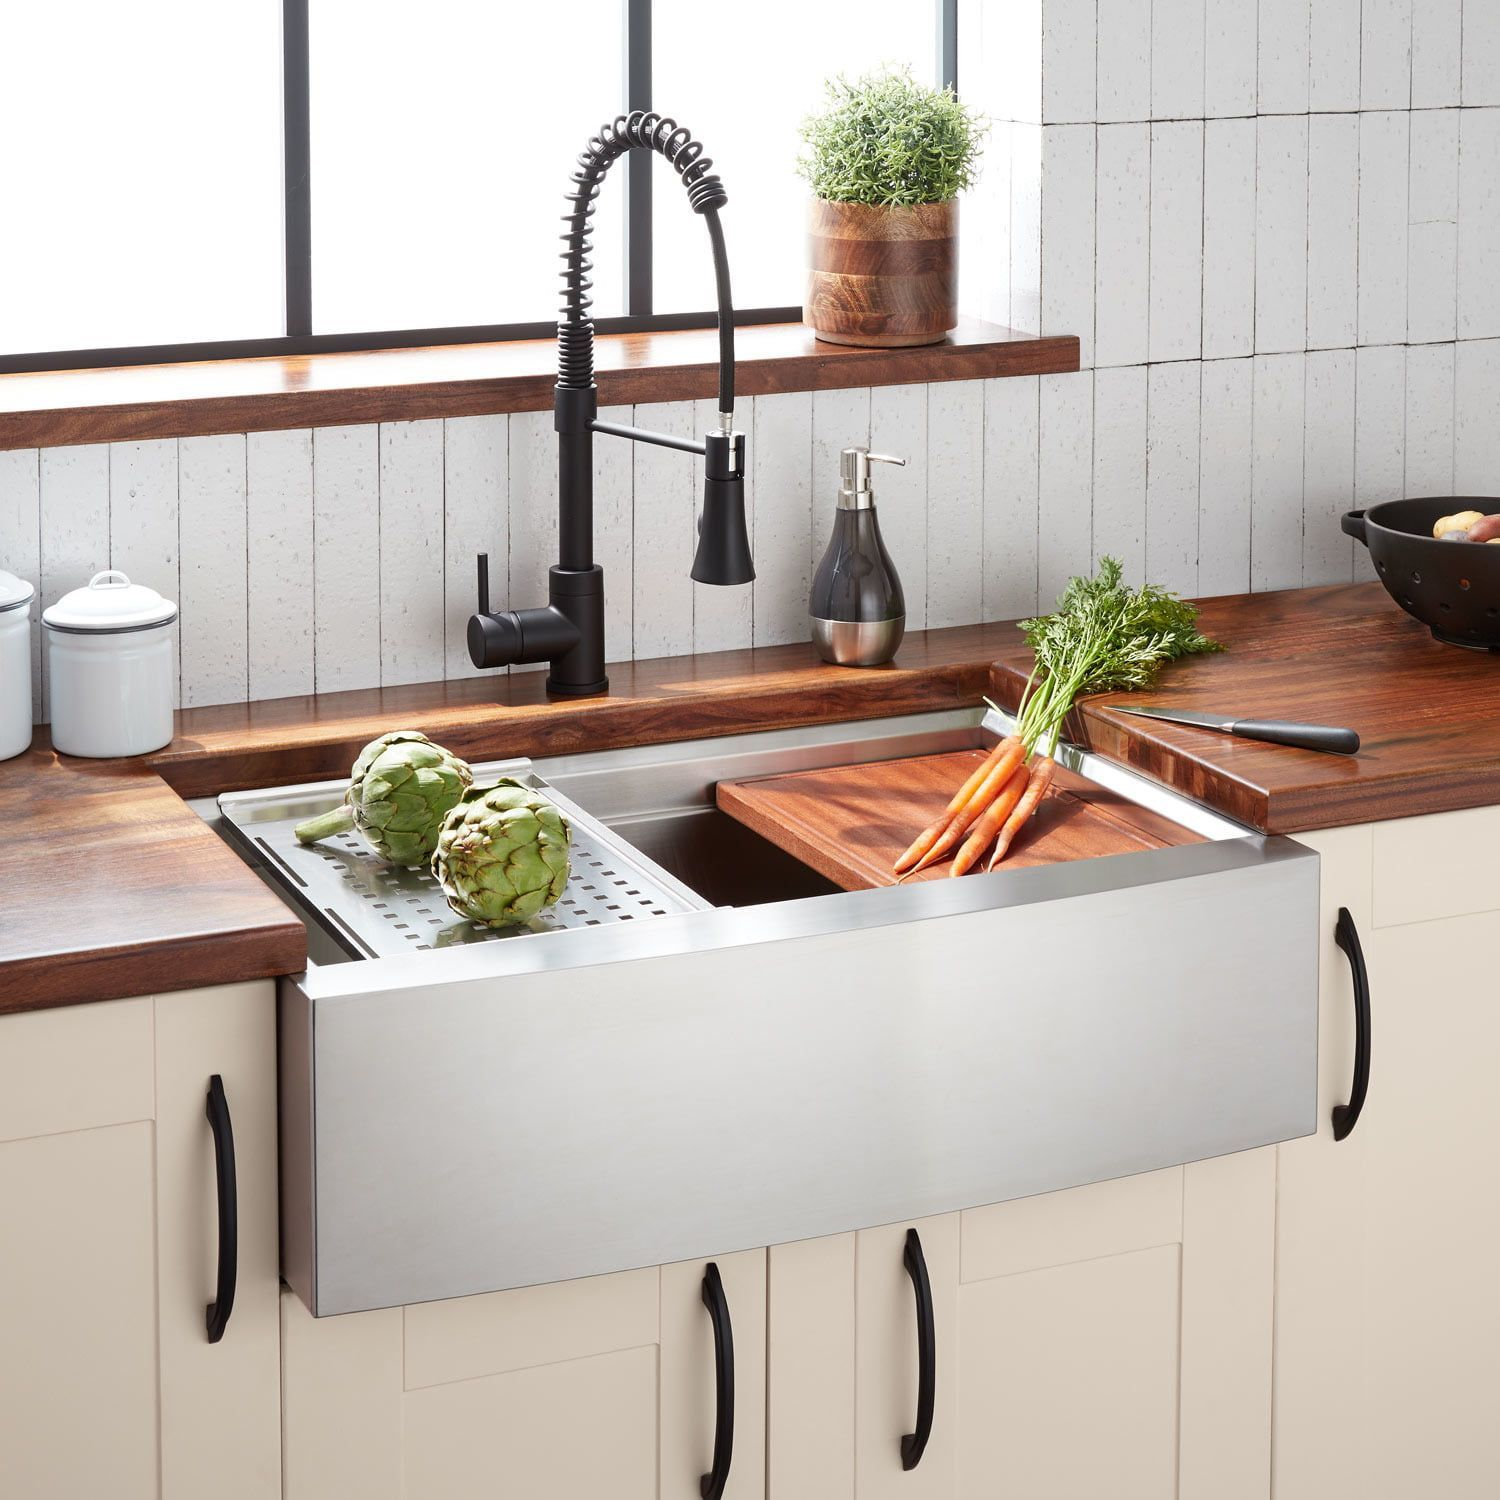 32 Workspace Stainless Steel Farmhouse Sink Farmhouse Sink Stainless In 2020 Stainless Steel Farmhouse Sink A Christmas Story Sink